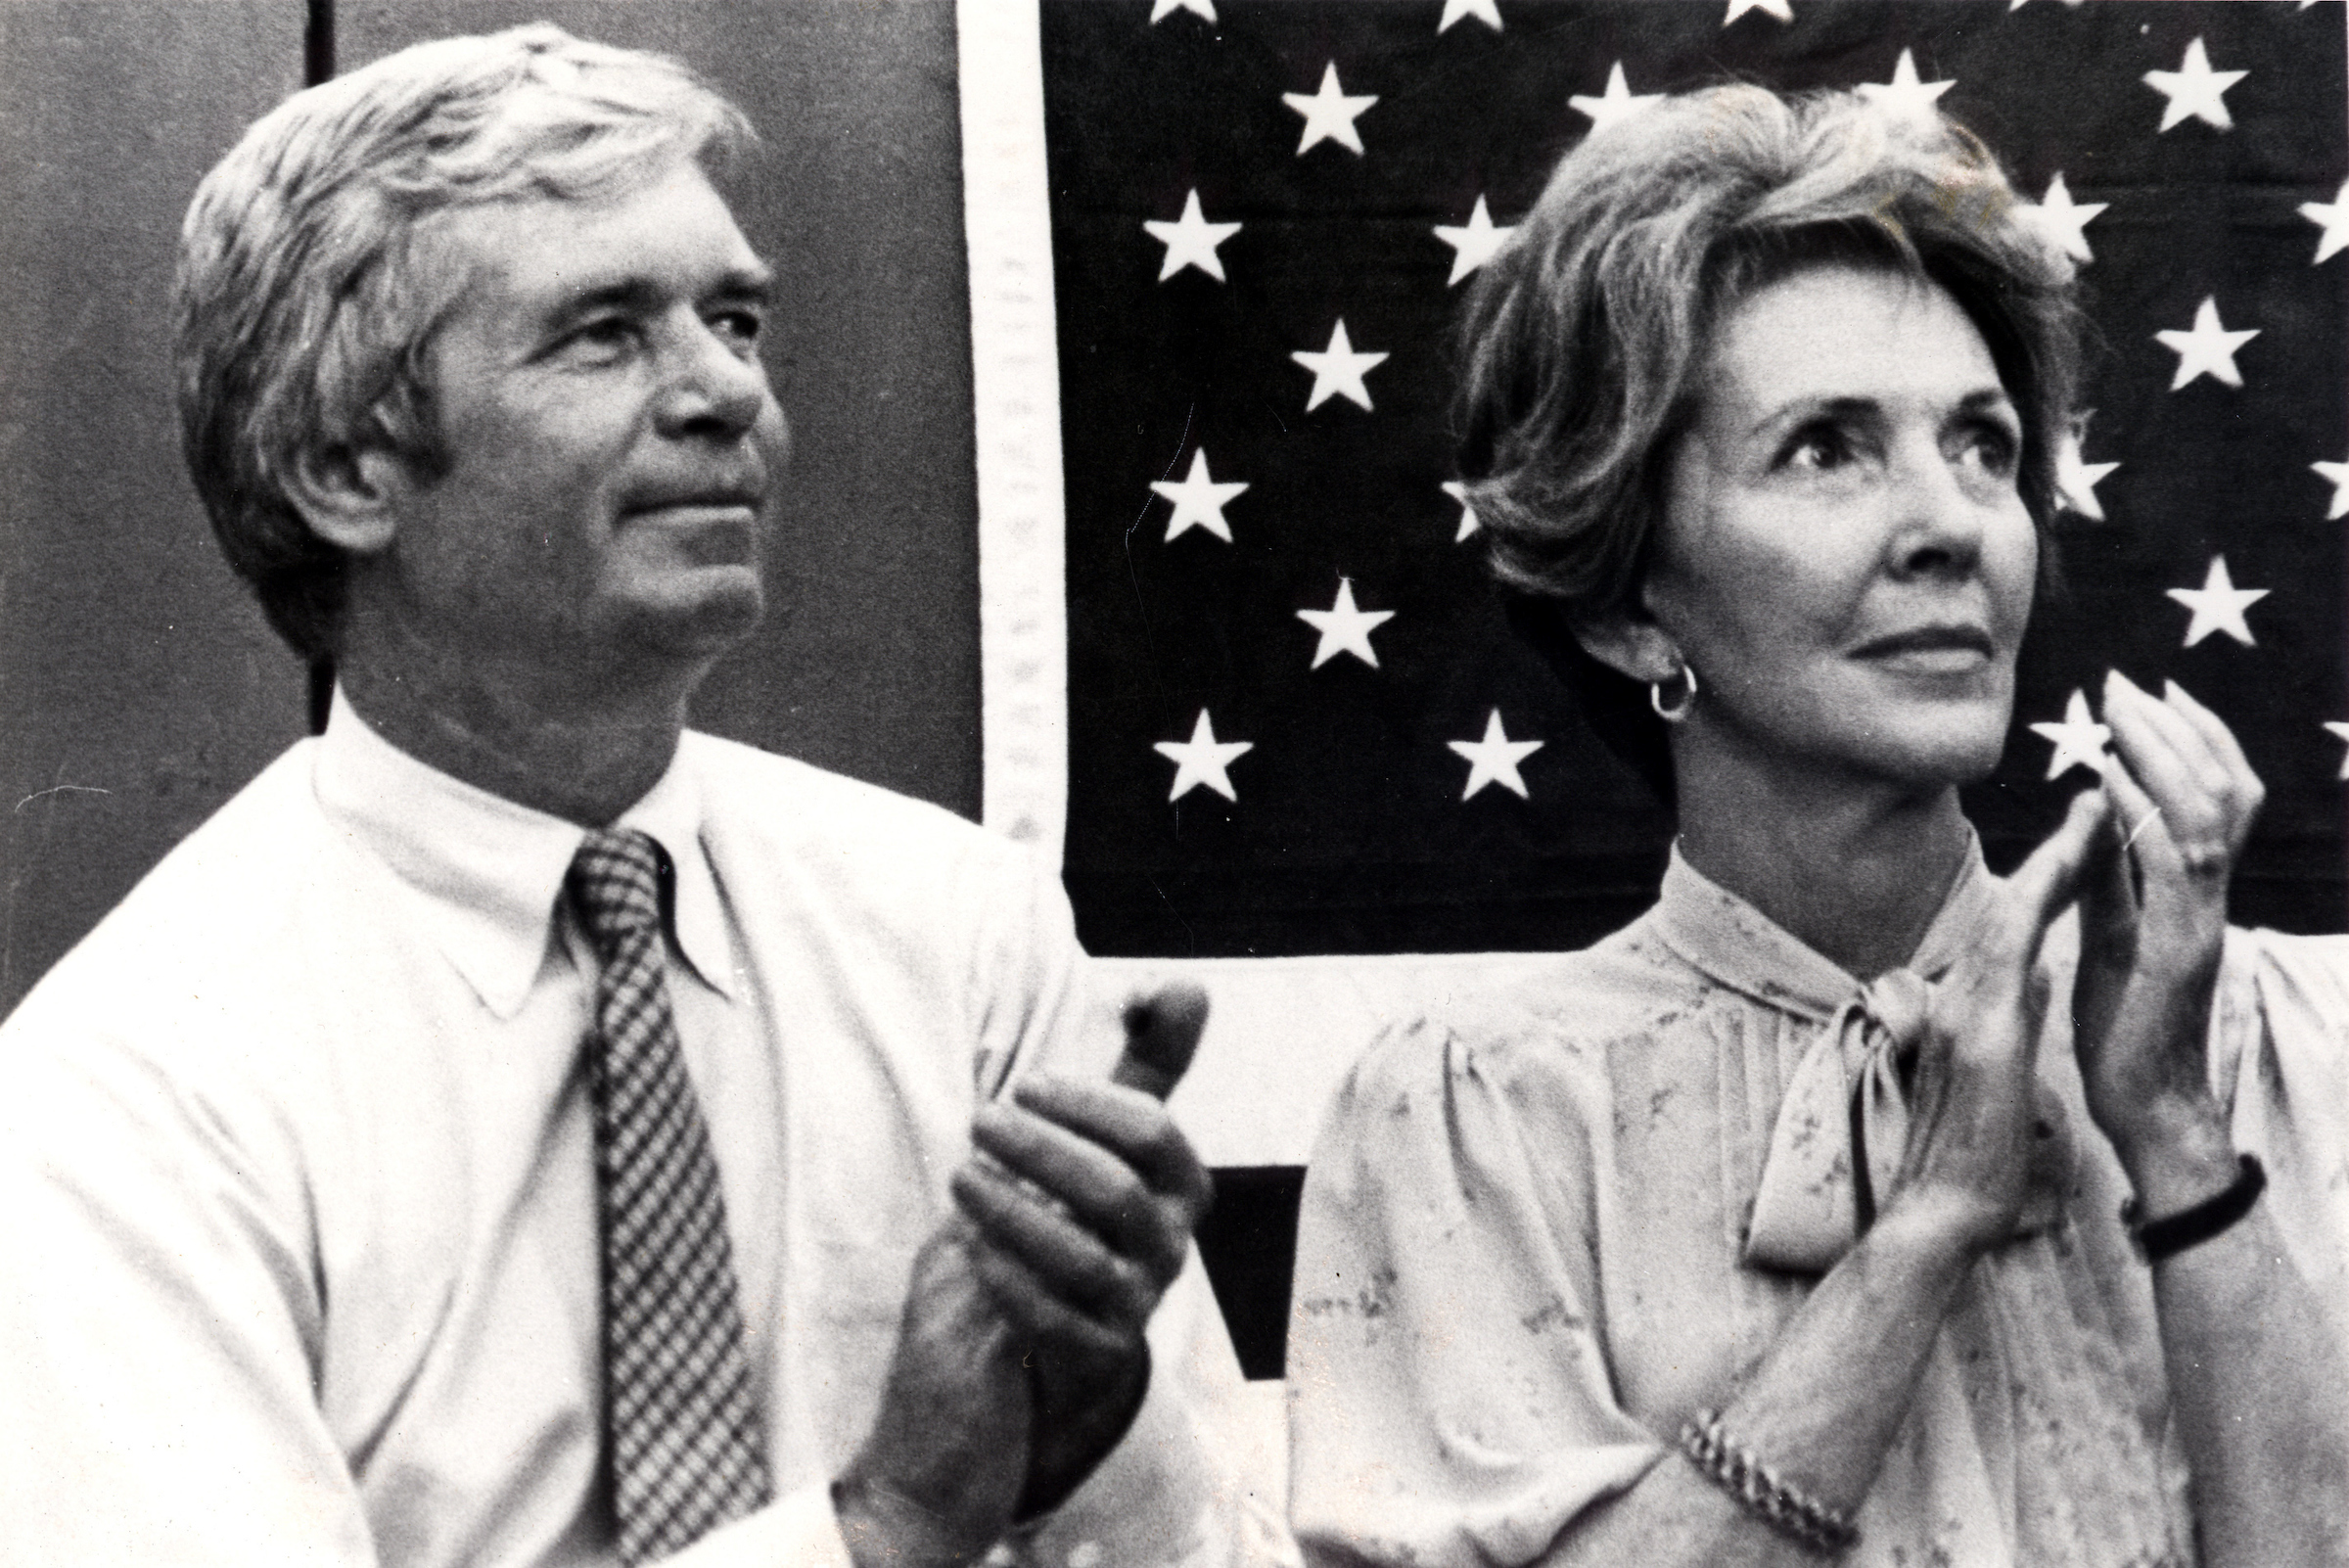 Mississippi Sen. Thad Cochran and Nancy Reagan listen to a a speech by Ronald Reagan at the Neshoba County Fair in Philadelphia, Mississippi, during his 1980 presidential campaign. Cochran, who was elected to the Senate in 1978, announced this week he's resigning effective April 1.